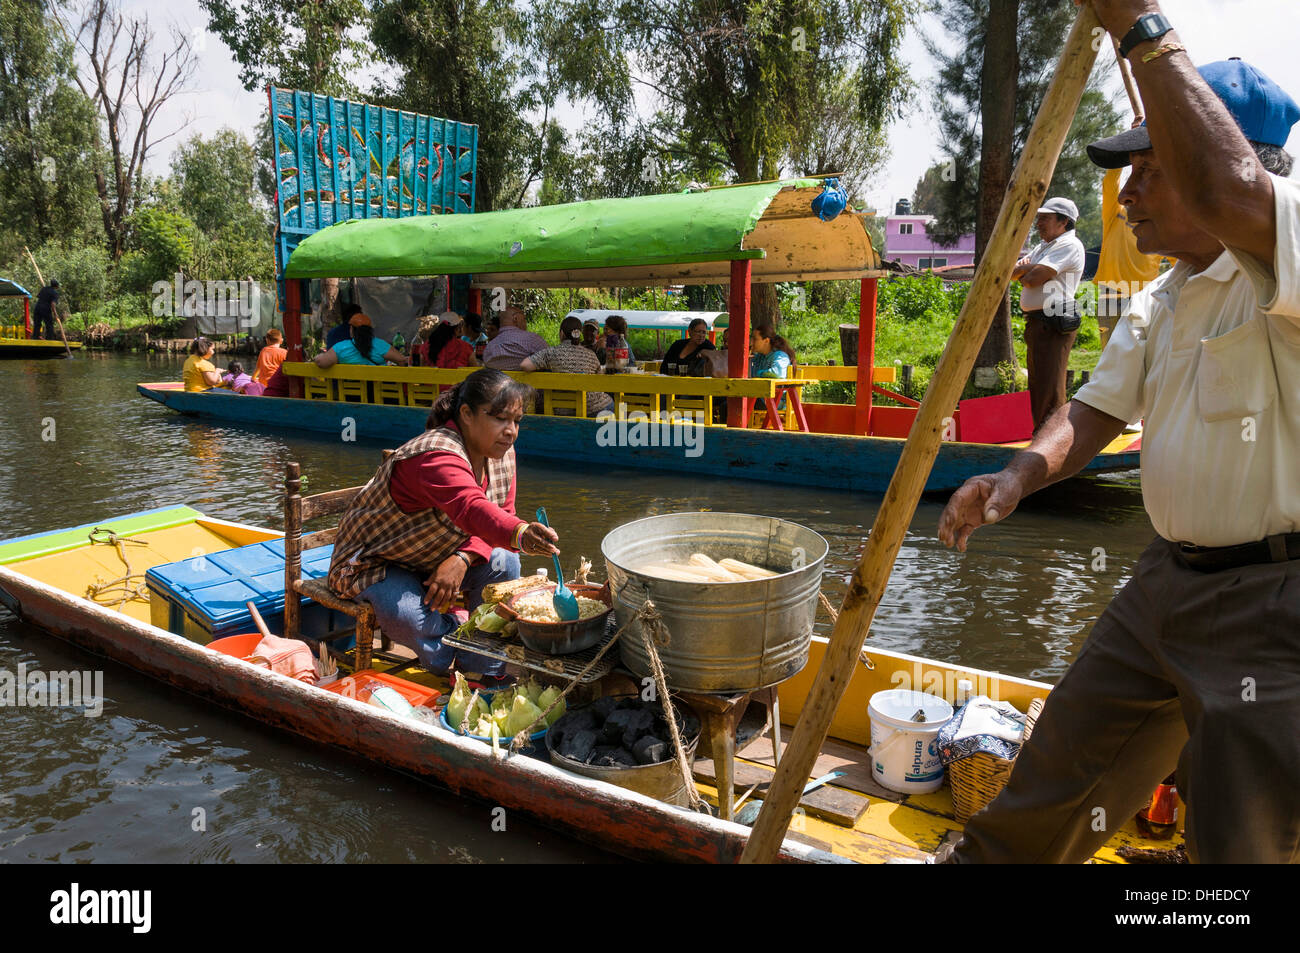 Food Vendor At The Floating Gardens In Xochimilco Unesco World Stock Photo Royalty Free Image